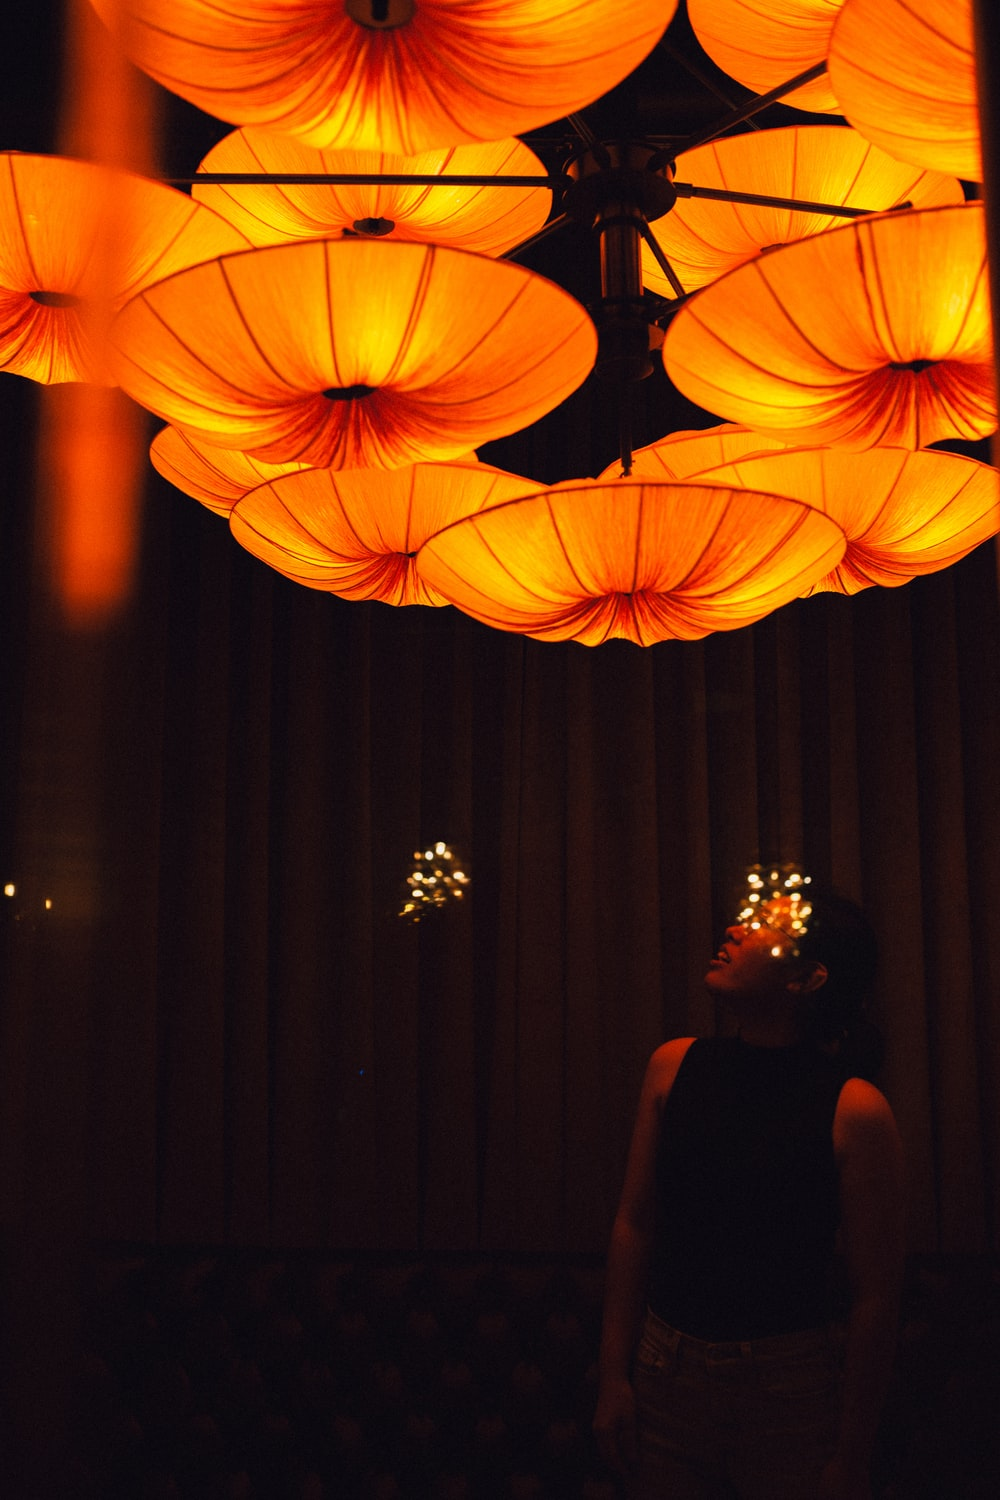 woman in black dress standing near red string lights